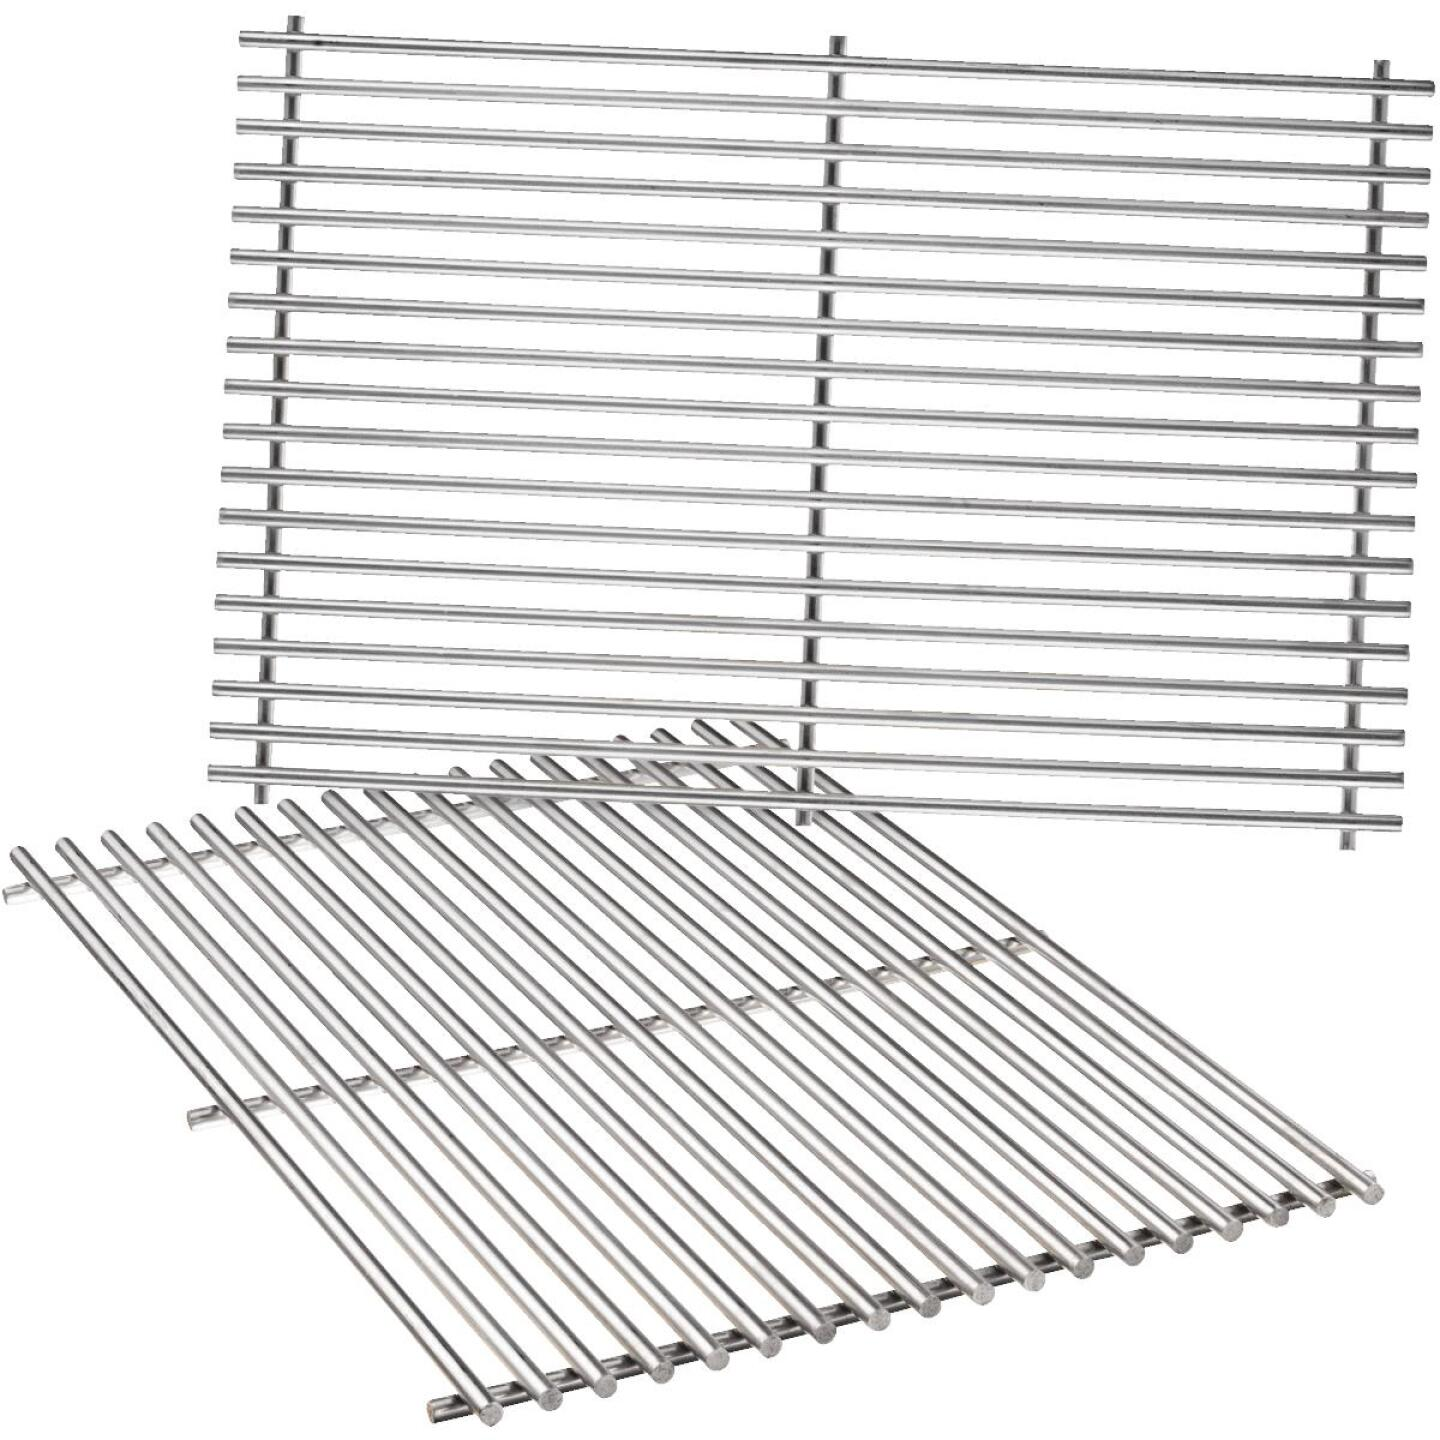 Weber Genesis 300 19.5 In. W. x 13 In. D. Stainless Steel Grill Grate Image 1